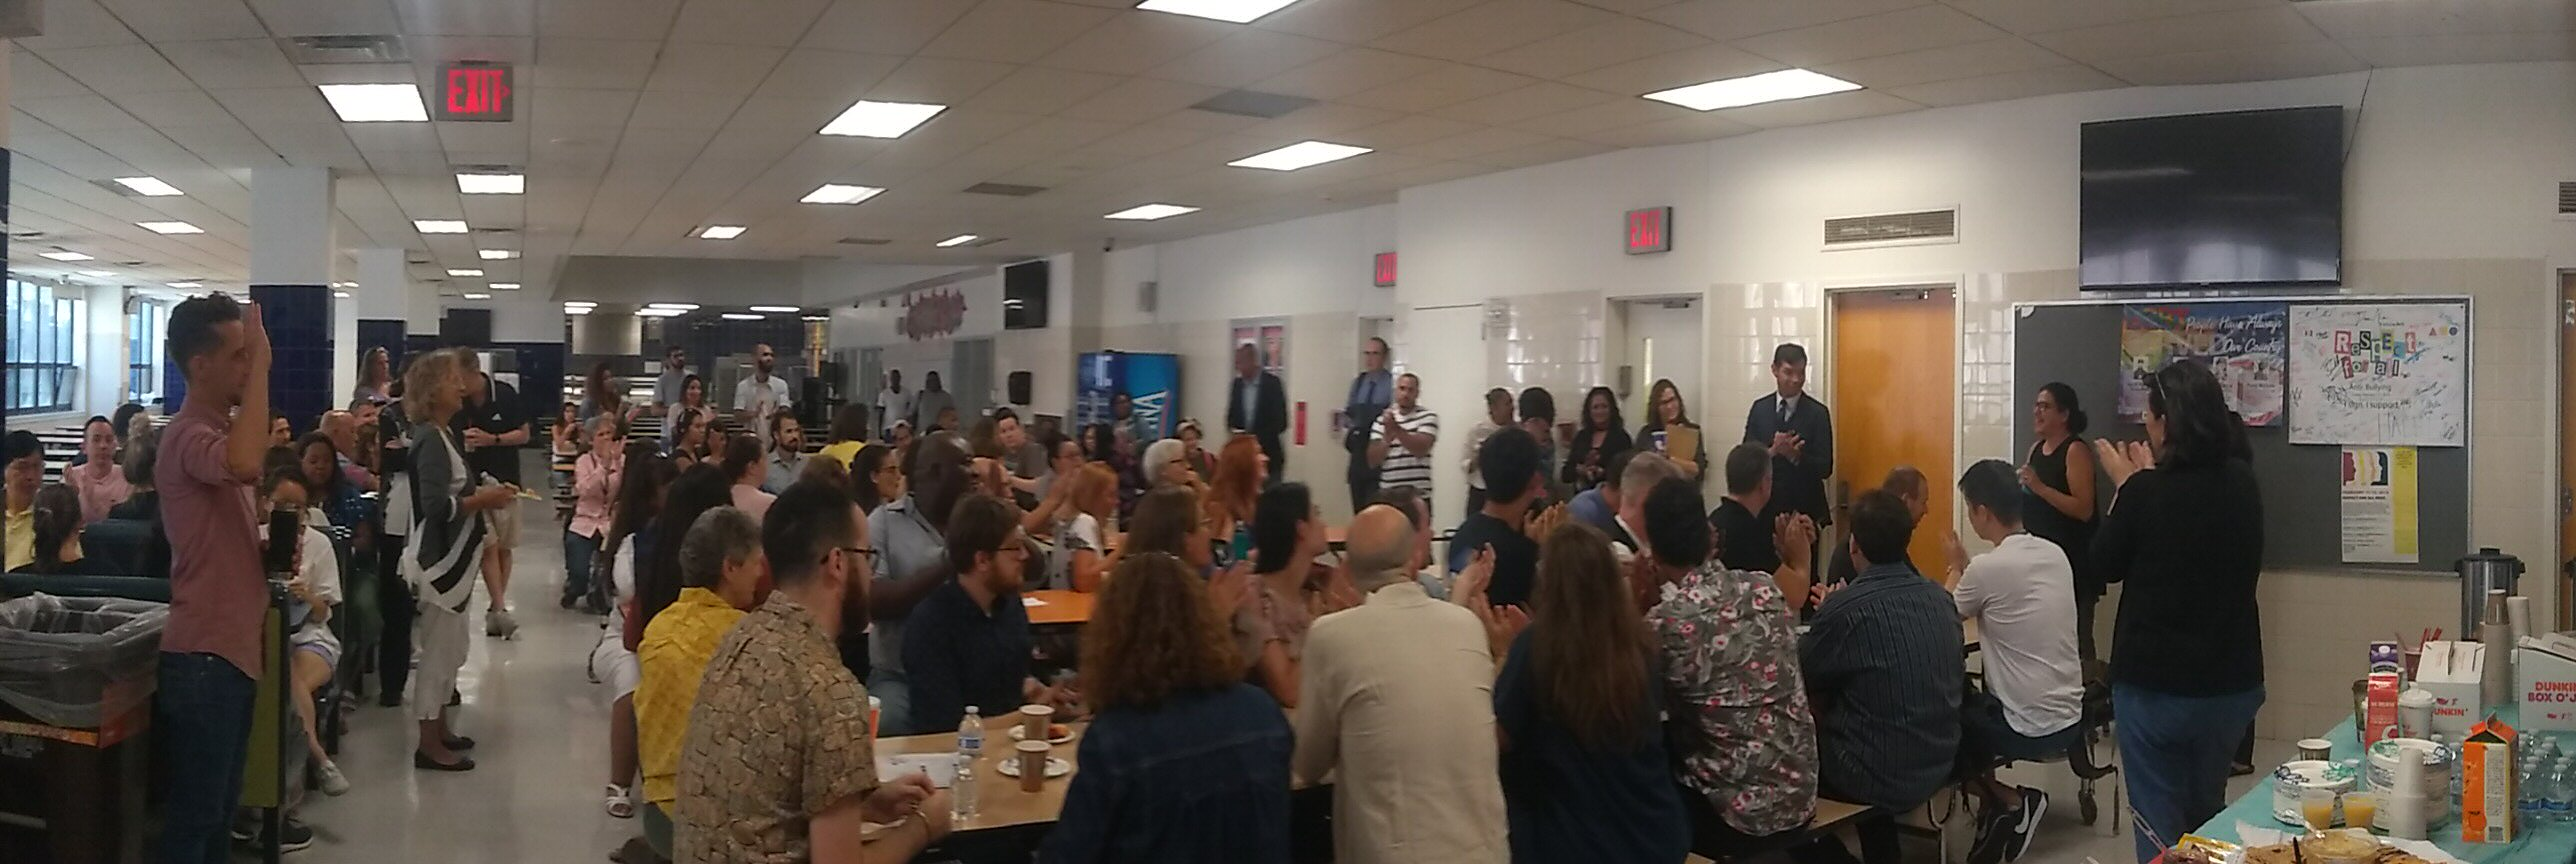 breakfast teacher pta hosted incredible staff morning going